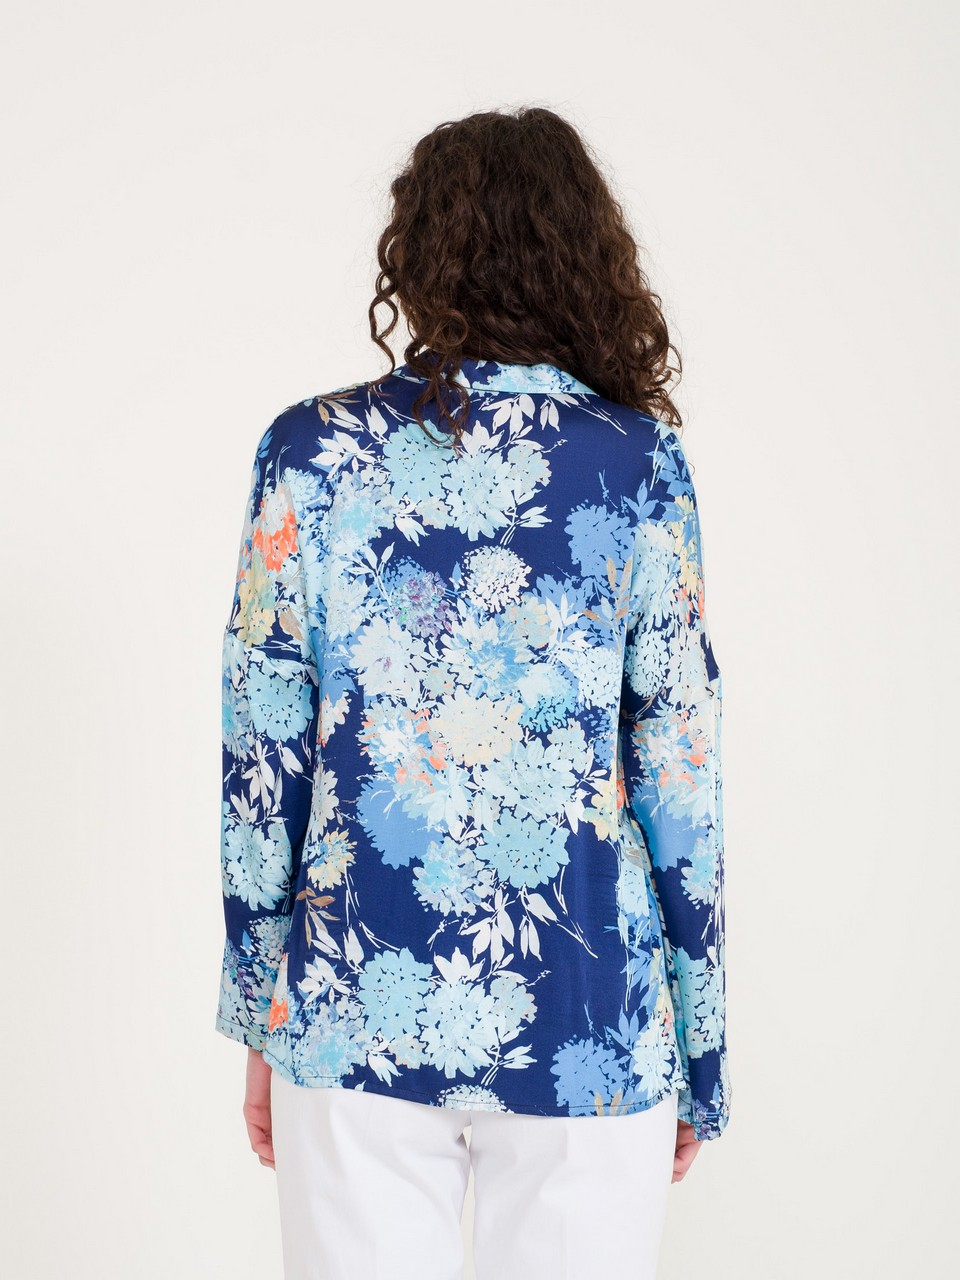 Floral Patterned Loose Cut Blouse